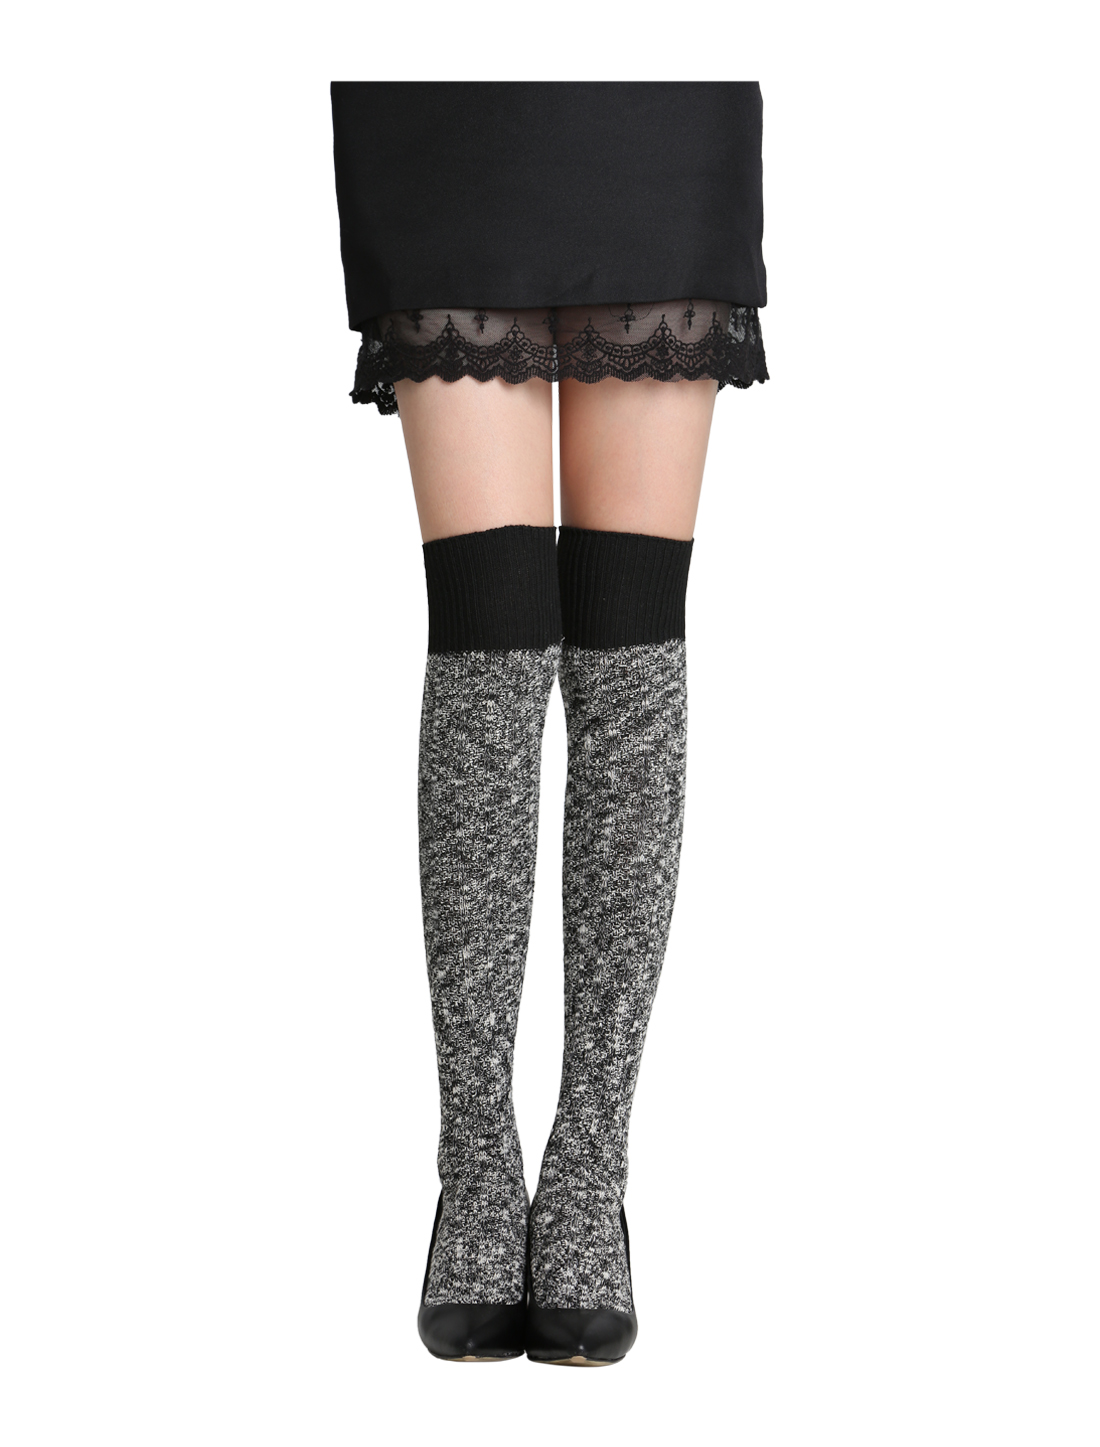 Women 1 Pack Rib Pattern Contrast Color Knit Stockings Black